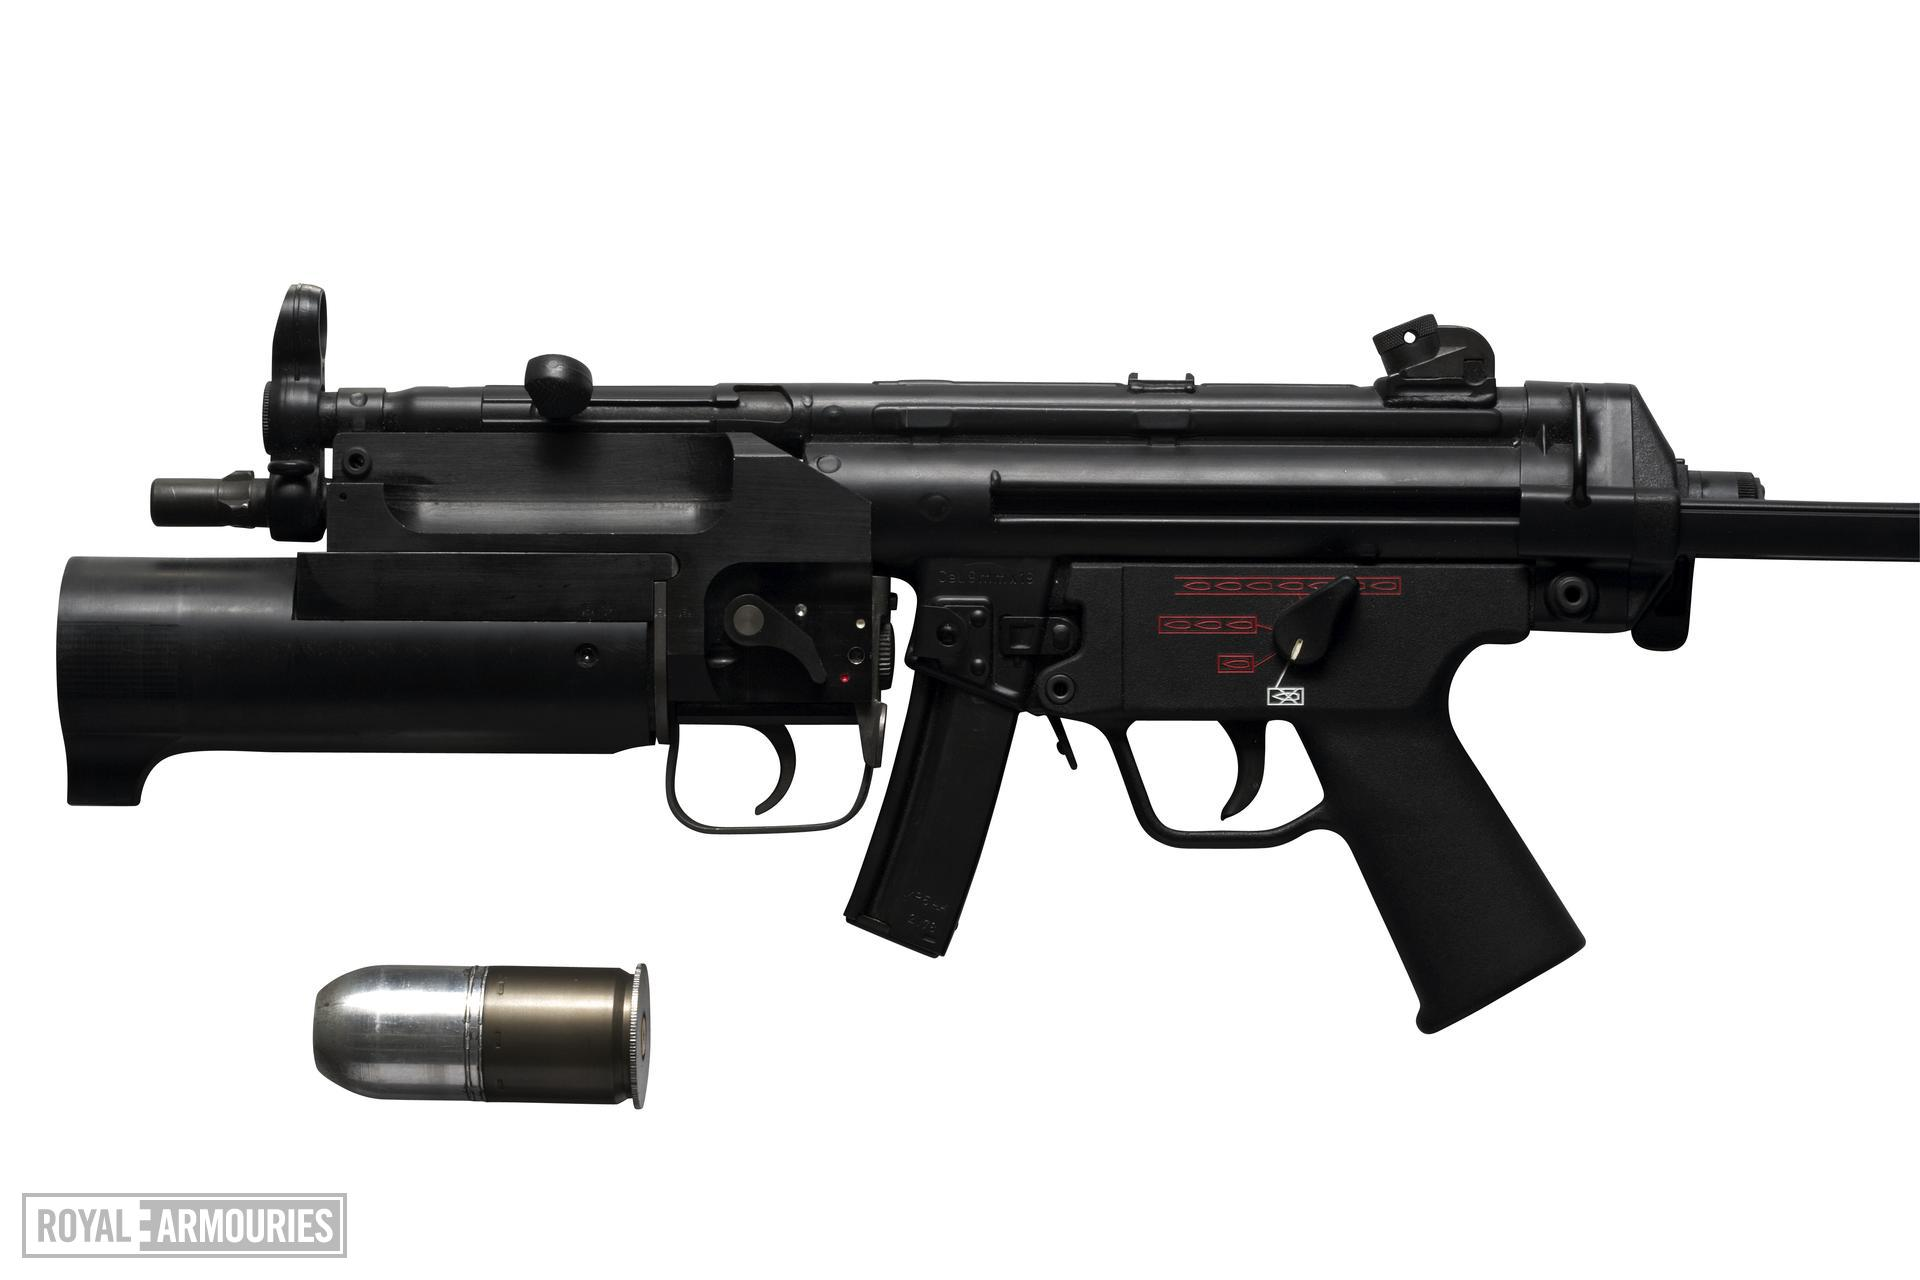 Centrefire automatic silenced submachine gun - H&K MP5 A5E With collapsable stock.